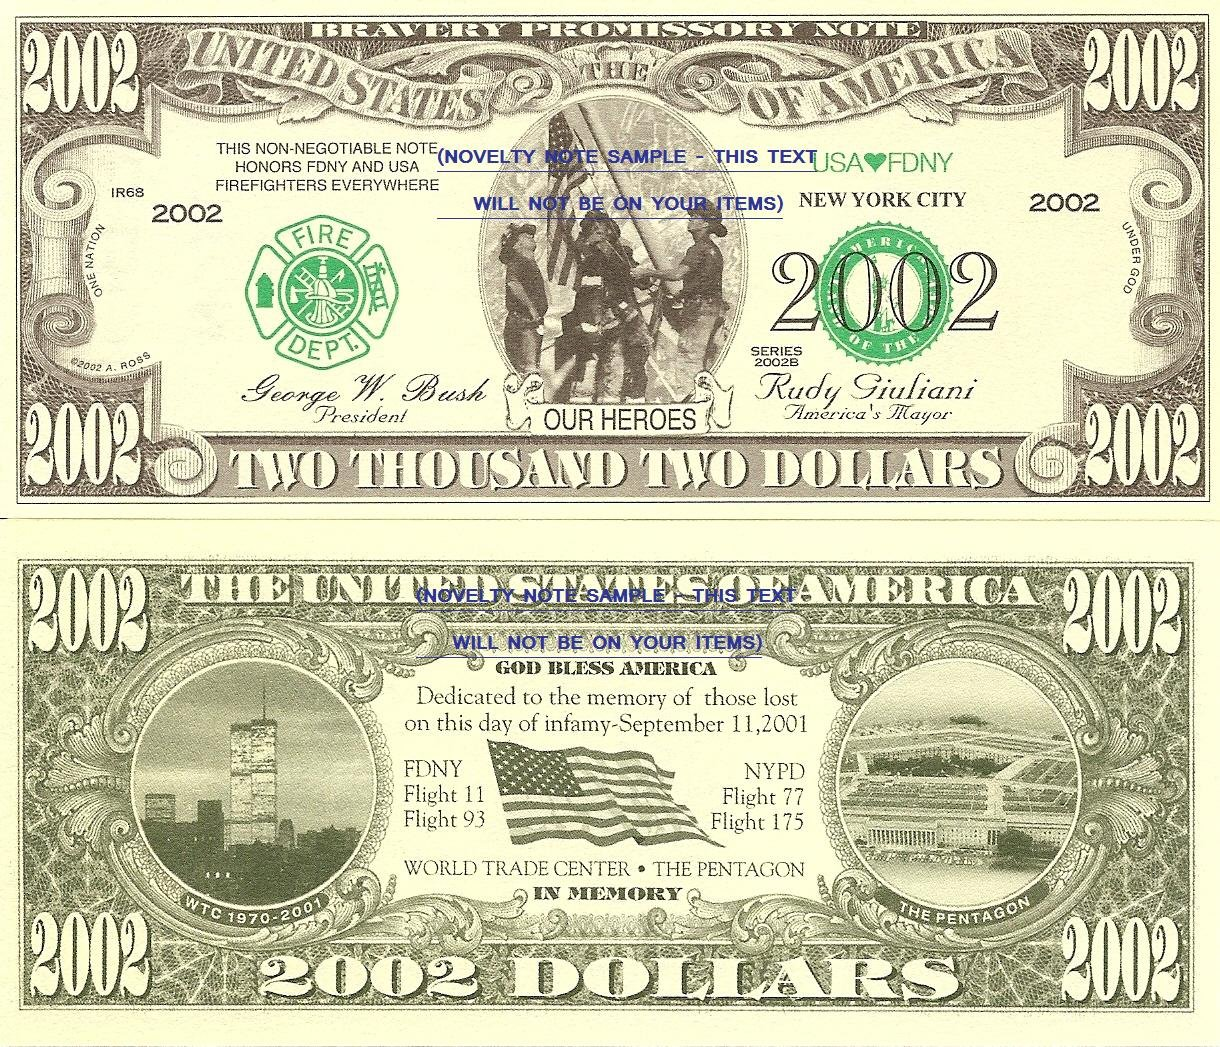 9/11 OUR HEROES FIRE FIGHTERS USA 2002 DOLLAR BILLS x 4